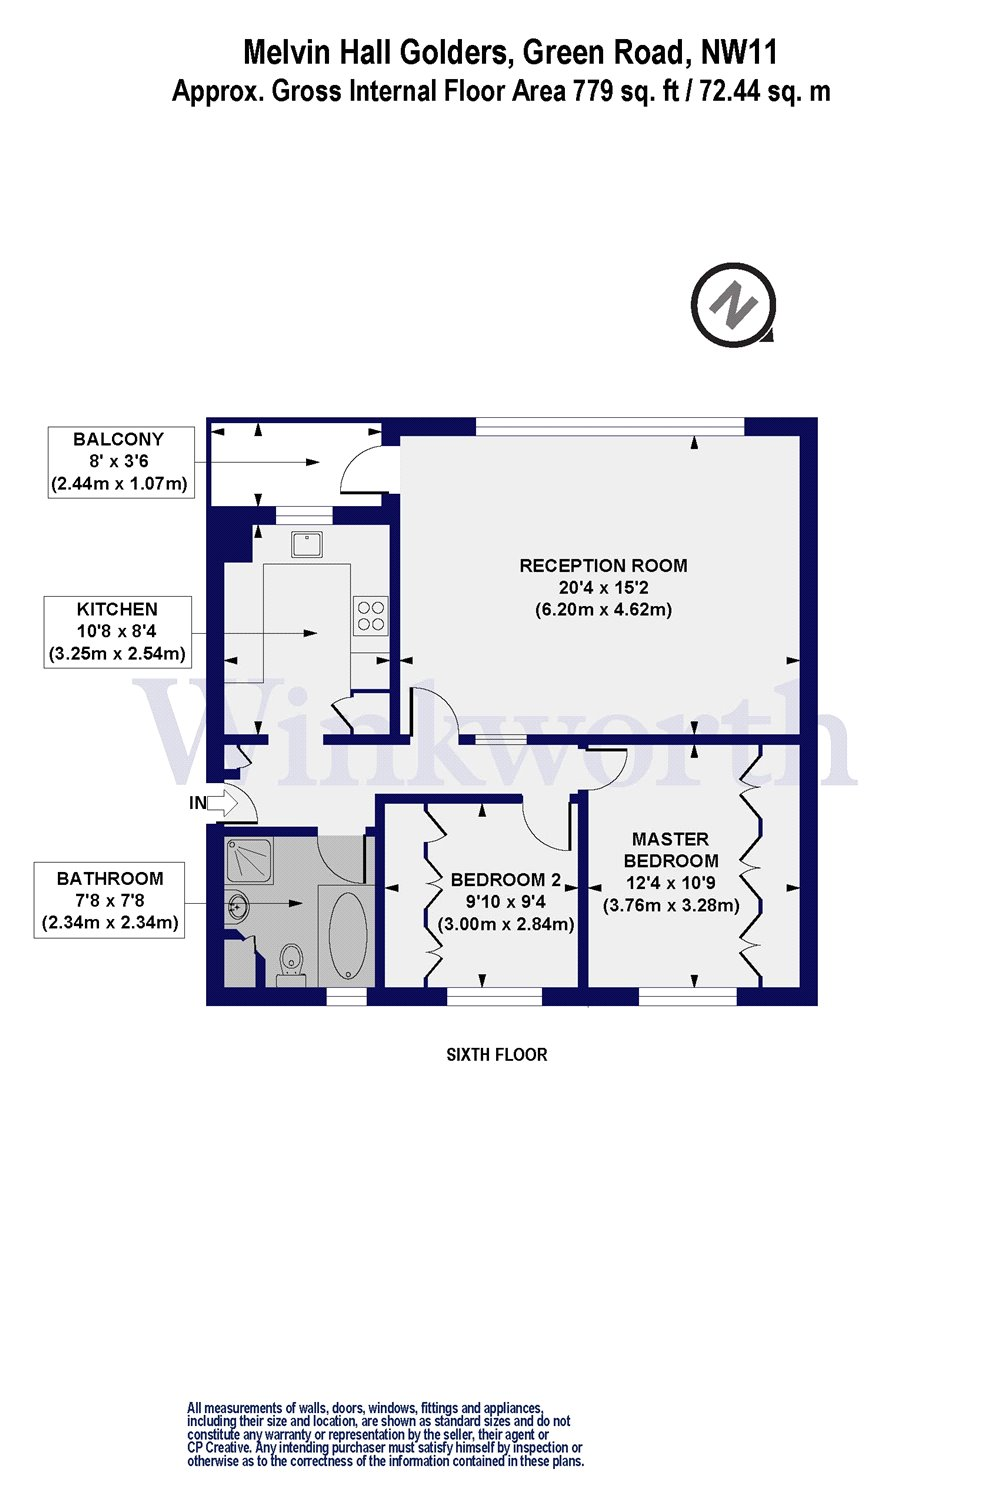 2 Bedroom Property For Sale In Melvin Hall Golders Green